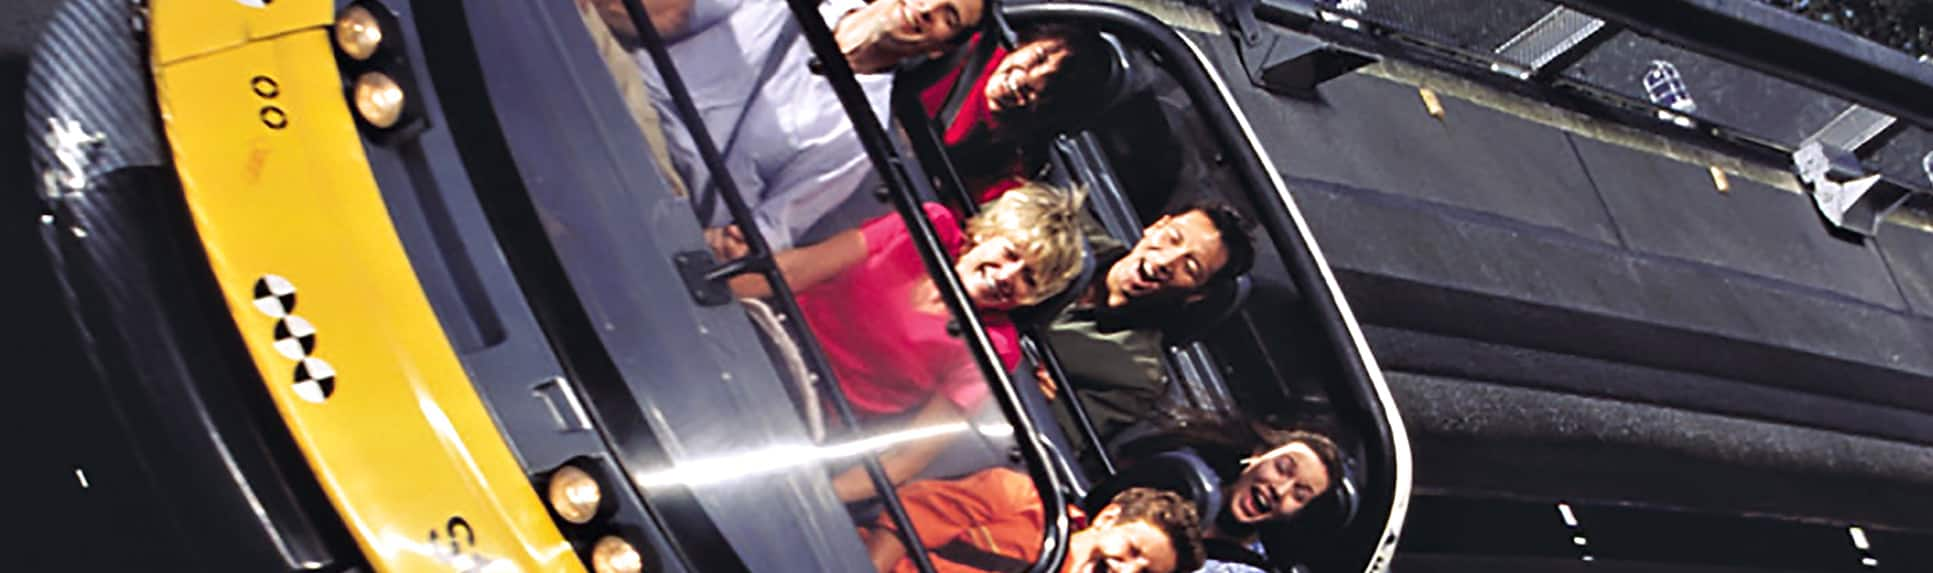 People riding the Test Track Presented by Chevrolet attraction